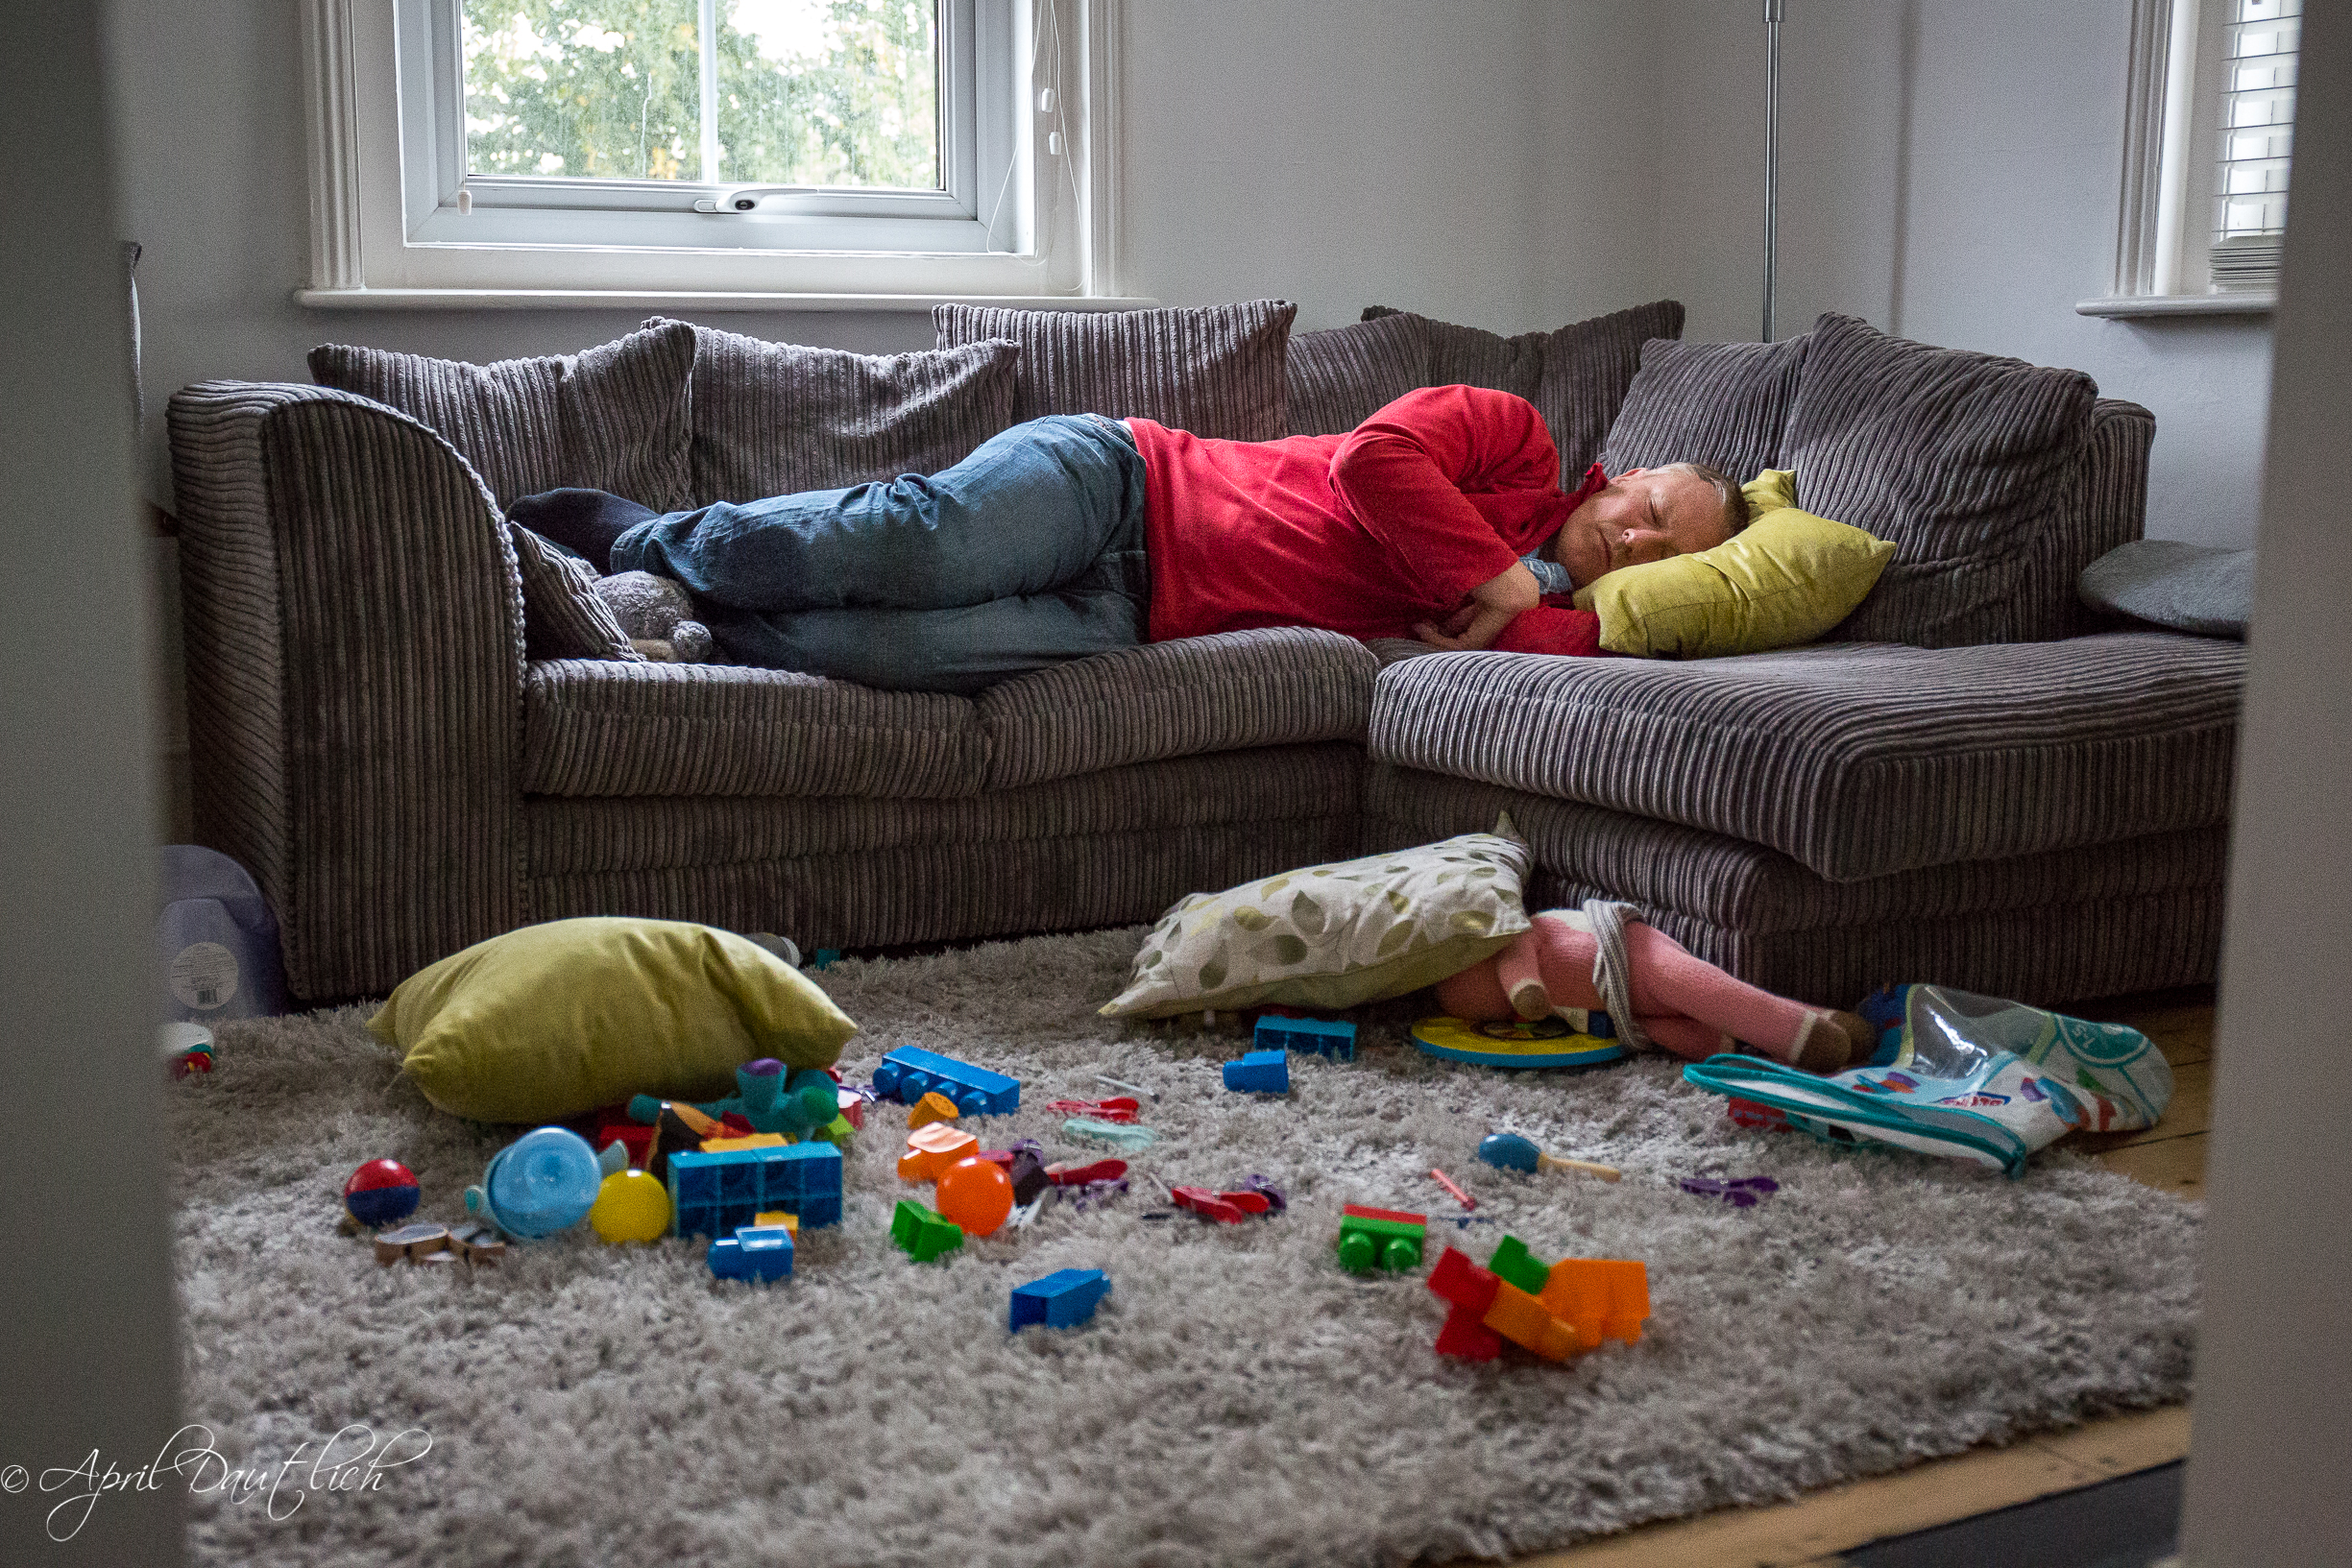 Dada napping on the sofa in the middle of toy chaos.